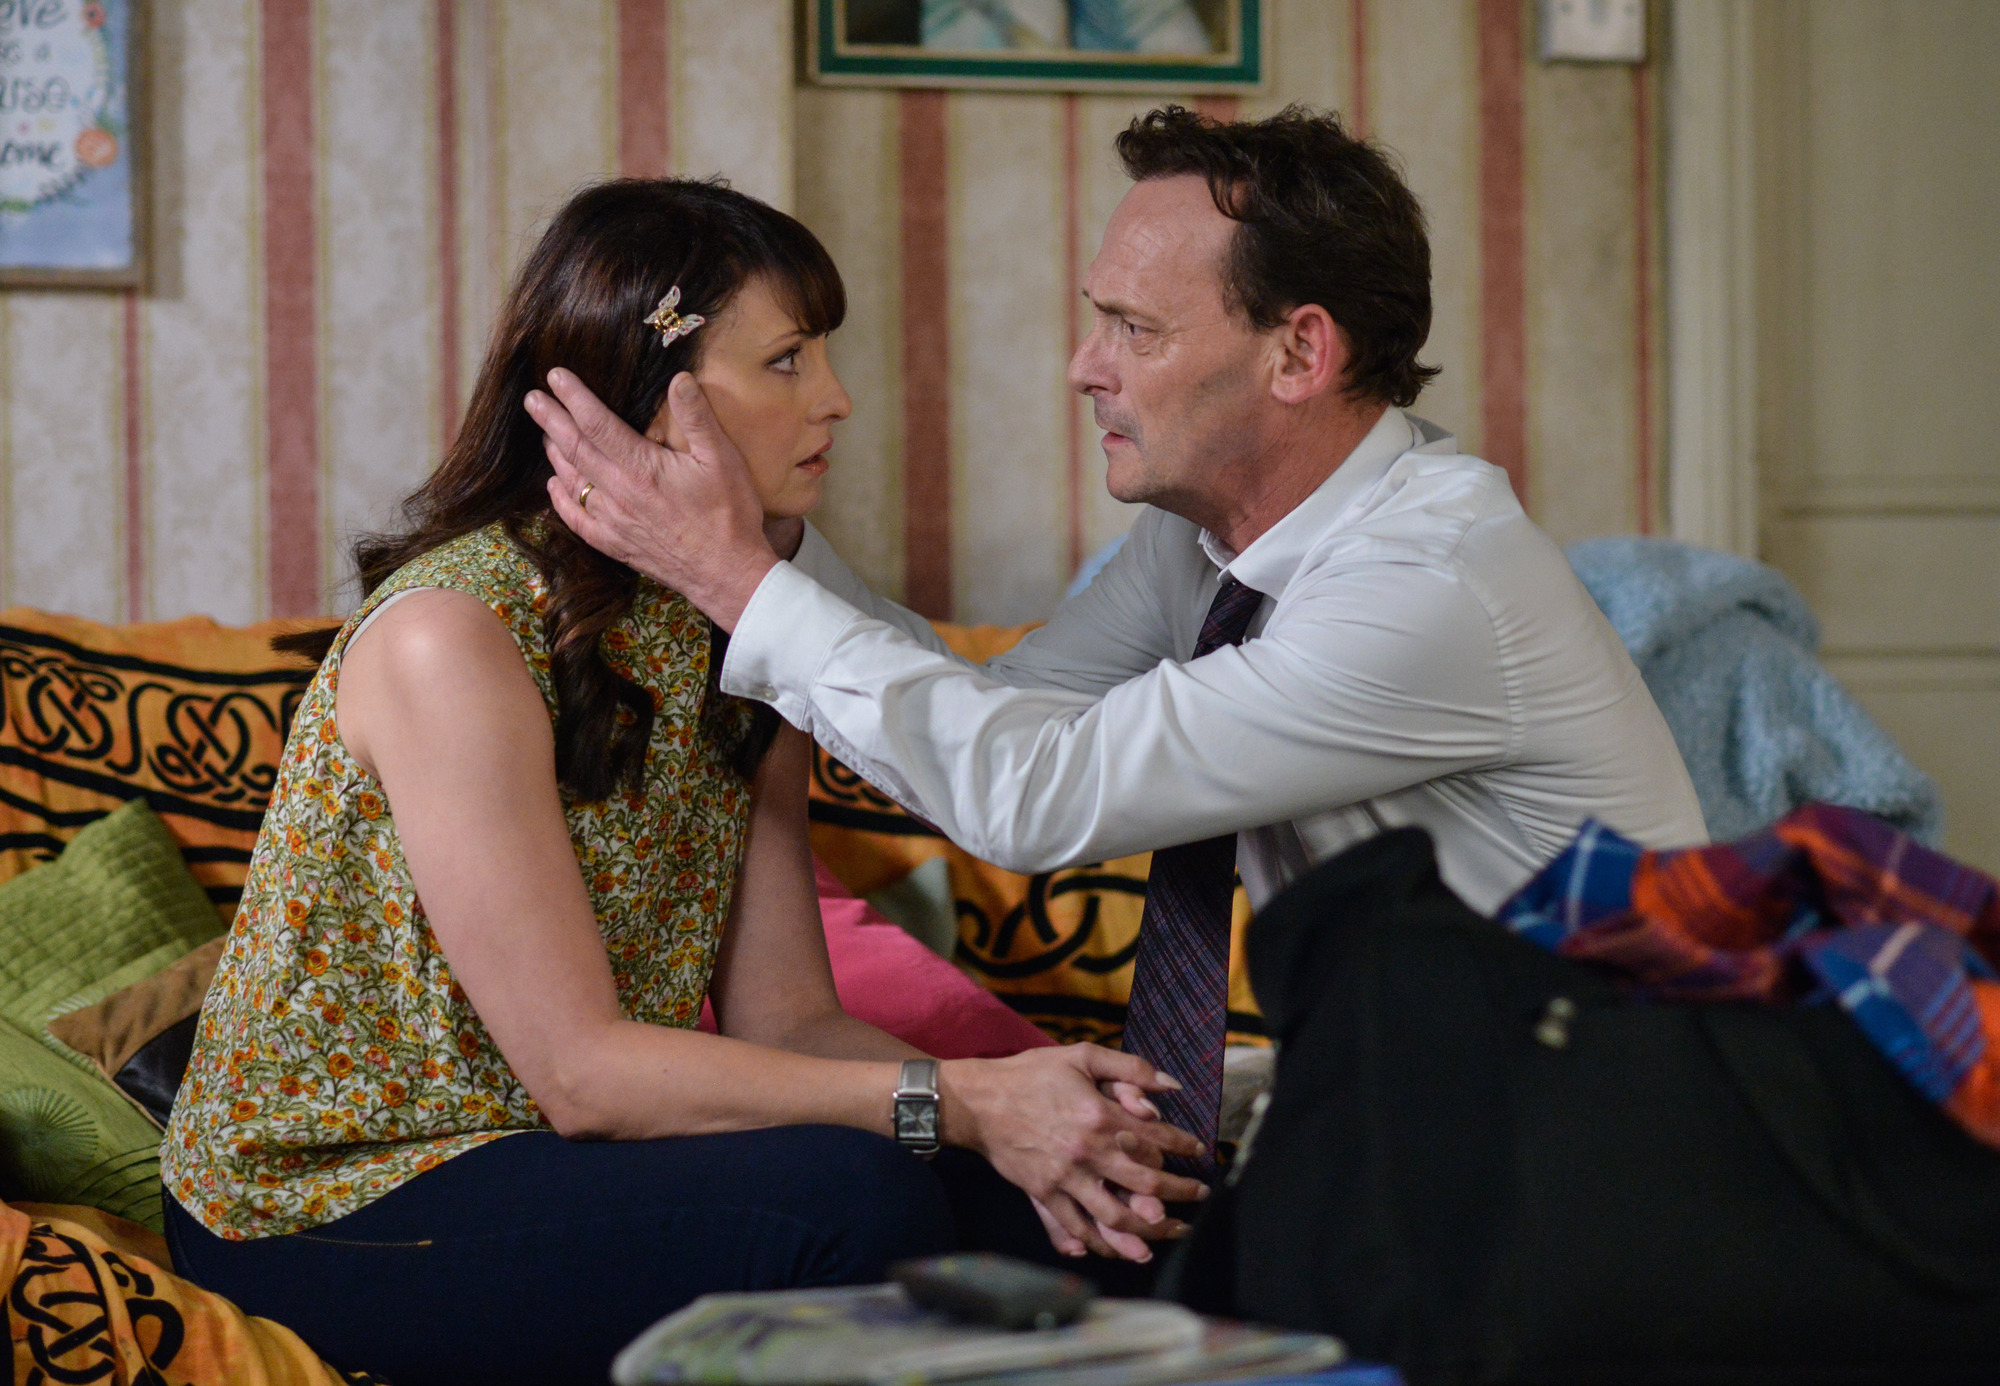 WARNING: Embargoed for publication until 00:00:01 on 16/08/2016 - Programme Name: EastEnders - July - September 2016 - TX: 25/08/2016 - Episode: EastEnders July - September  2016 - 5339 (No. n/a) - Picture Shows: *STRICTLY NOT FOR PUBLICATION UNTIL 00:01HRS, TUESDAY 16th AUGUST, 2016* ***FORTNIGHTLIES PLEASE DO NOT USE (SOAP LIFE AND ALL ABOUT SOAP) Billy pleads with Honey to give him one more chance.  Honey Mitchell (EMMA BARTON), Billy Mitchell (PERRY FENWICK) - (C) BBC - Photographer: Jack Barnes